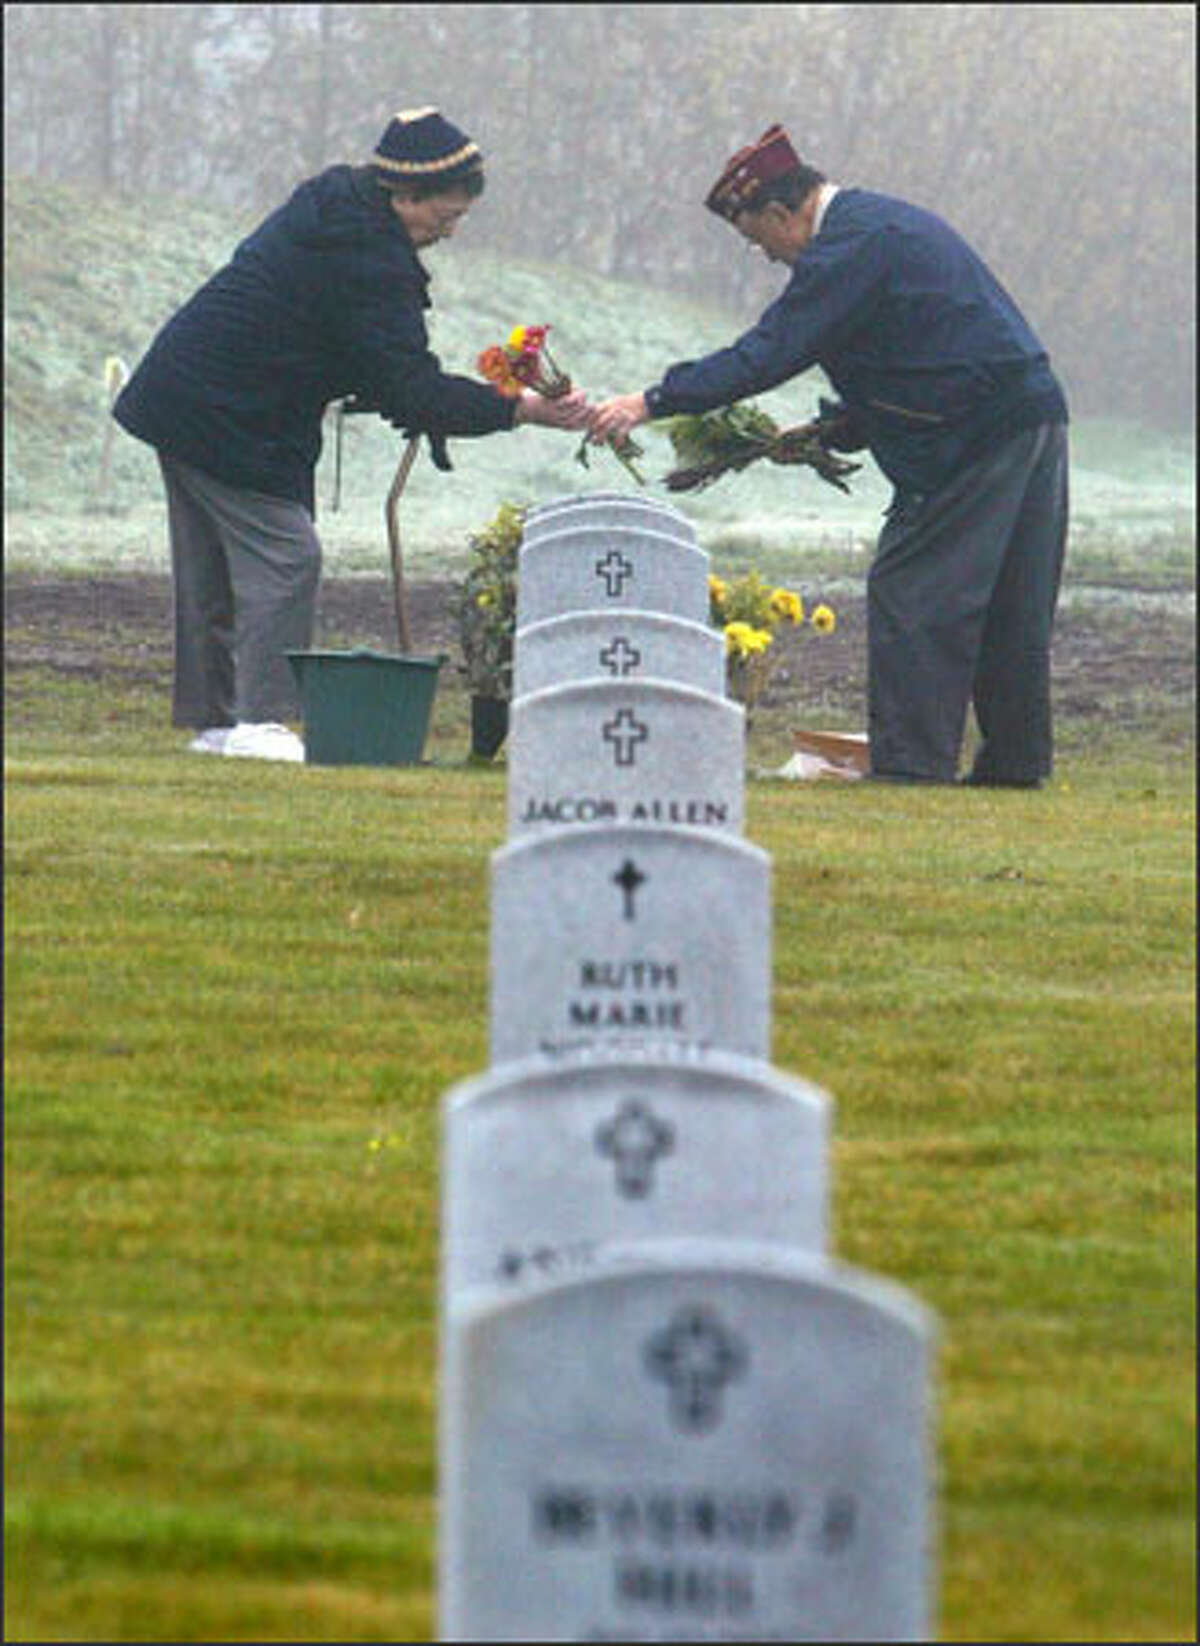 U.S. Army veteran Roy Fujiwara, 87, and his wife, Sci, arrange flowers at the grave of Roy's brother, Yoshio Fujiwara, before the Veterans Day program at Kent's Tahoma National Cemetery. The Japanese American brothers served in World War II. More than 1,000 joined in Veterans Day ceremonies at the cemetery.